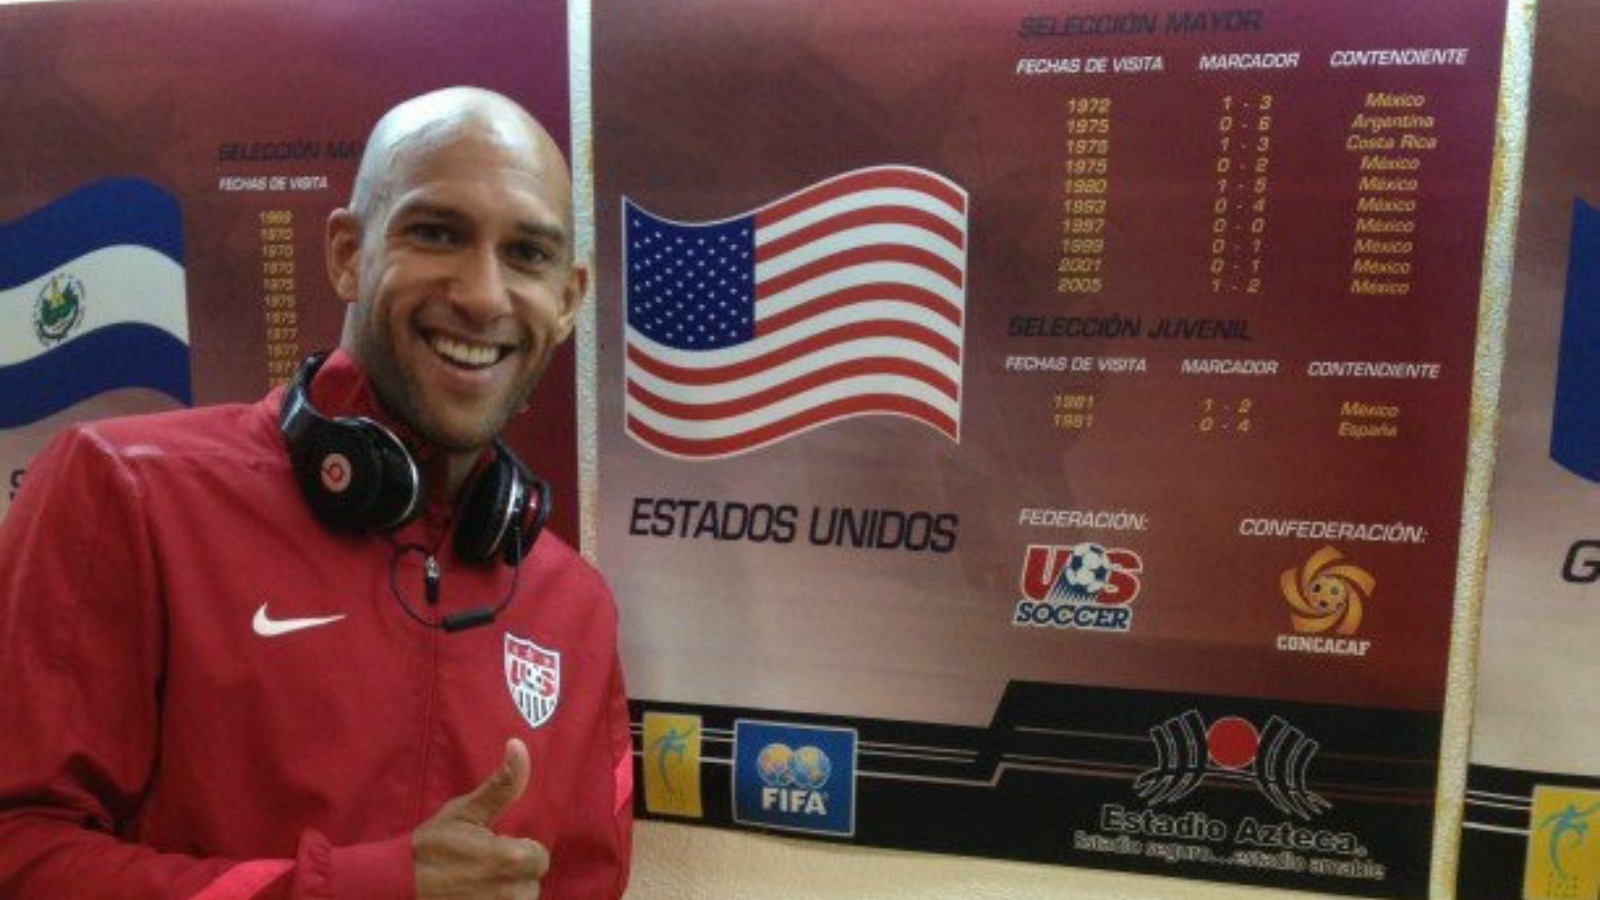 Tim Howard shares a great story on how much winning at Estadio Azteca means to the USMNT